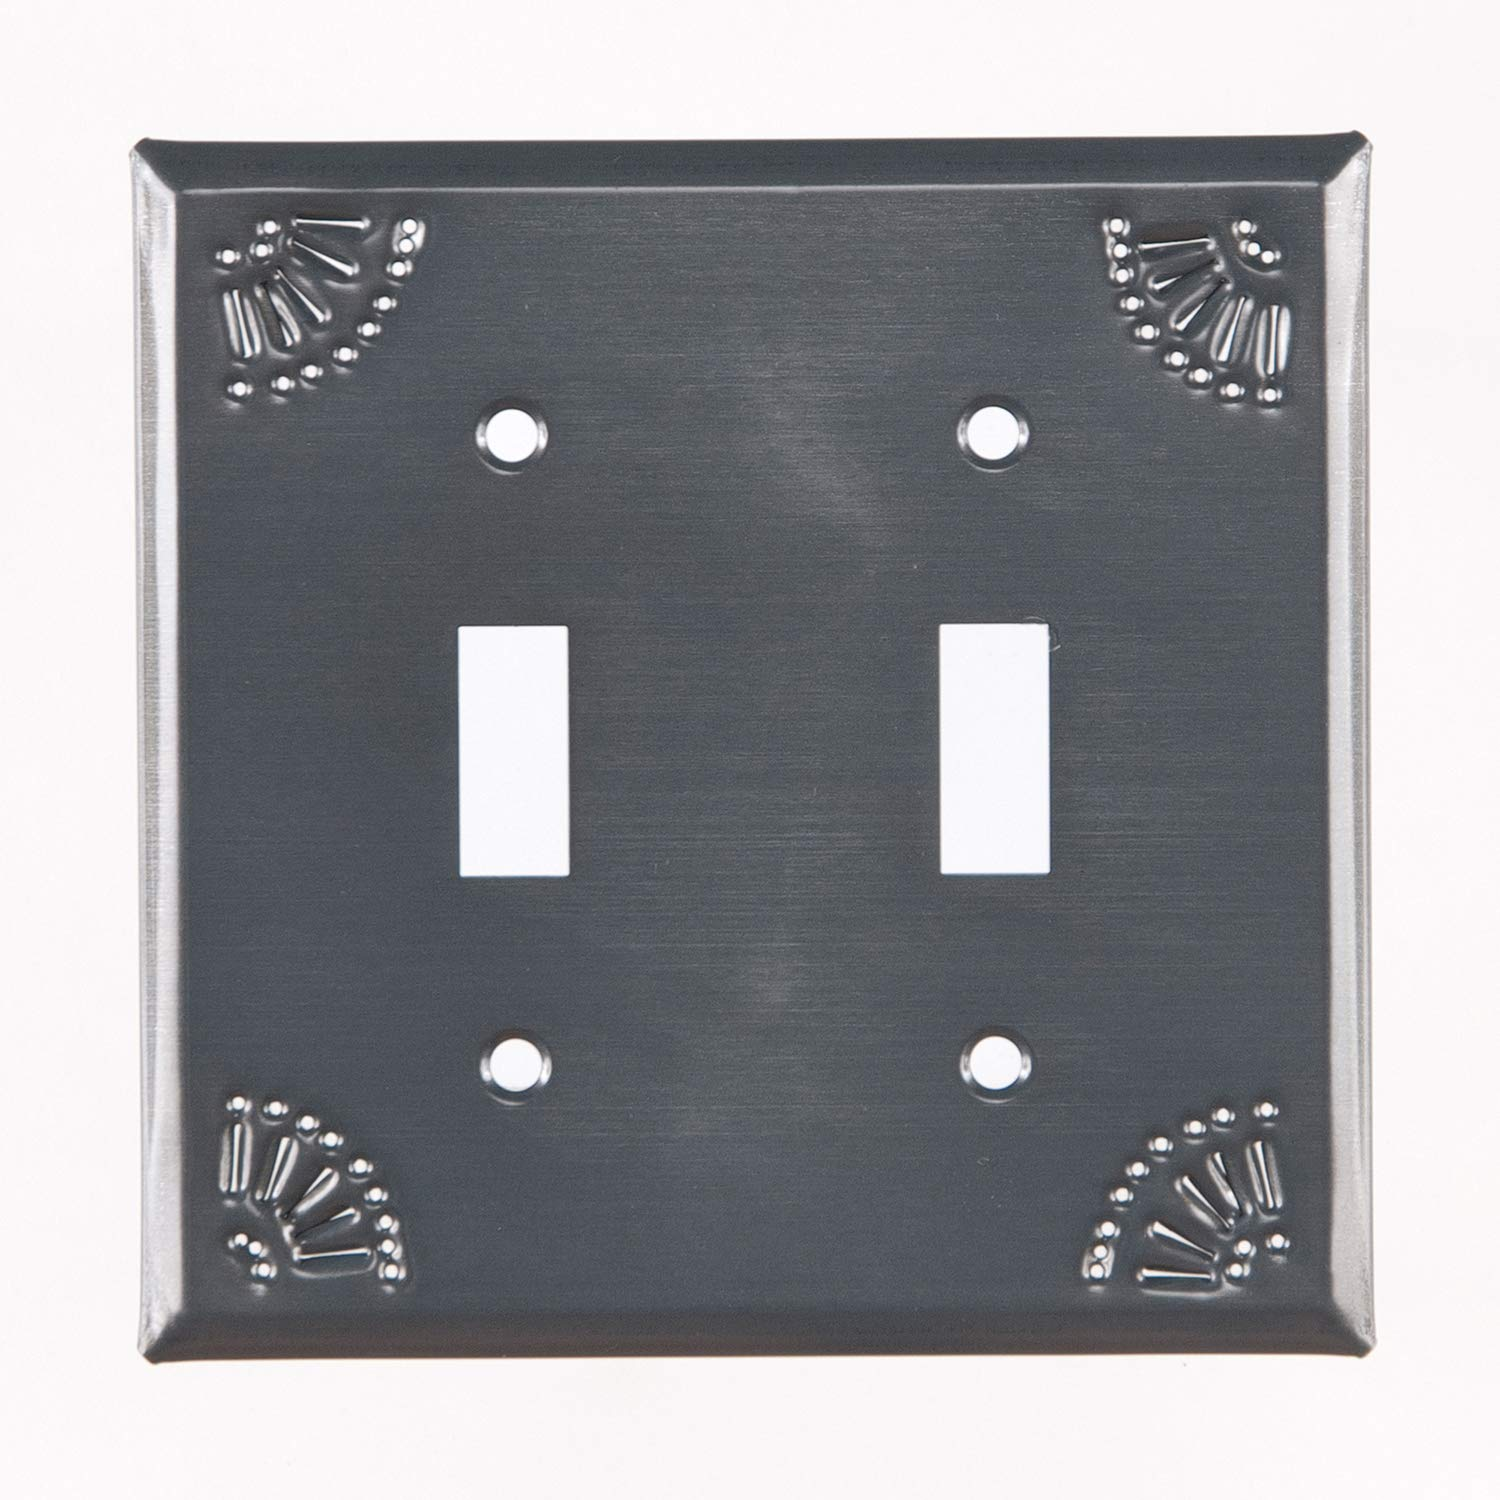 Pierced国Tin Tin Double Toggle Switch Plate Plate with Rustまたはアンティーク仕上げ 789DSRT Pierced国Tin B00DIIQI98 Country Tin Country Tin, こだわりの手しごと三春:f481bd01 --- gamenavi.club